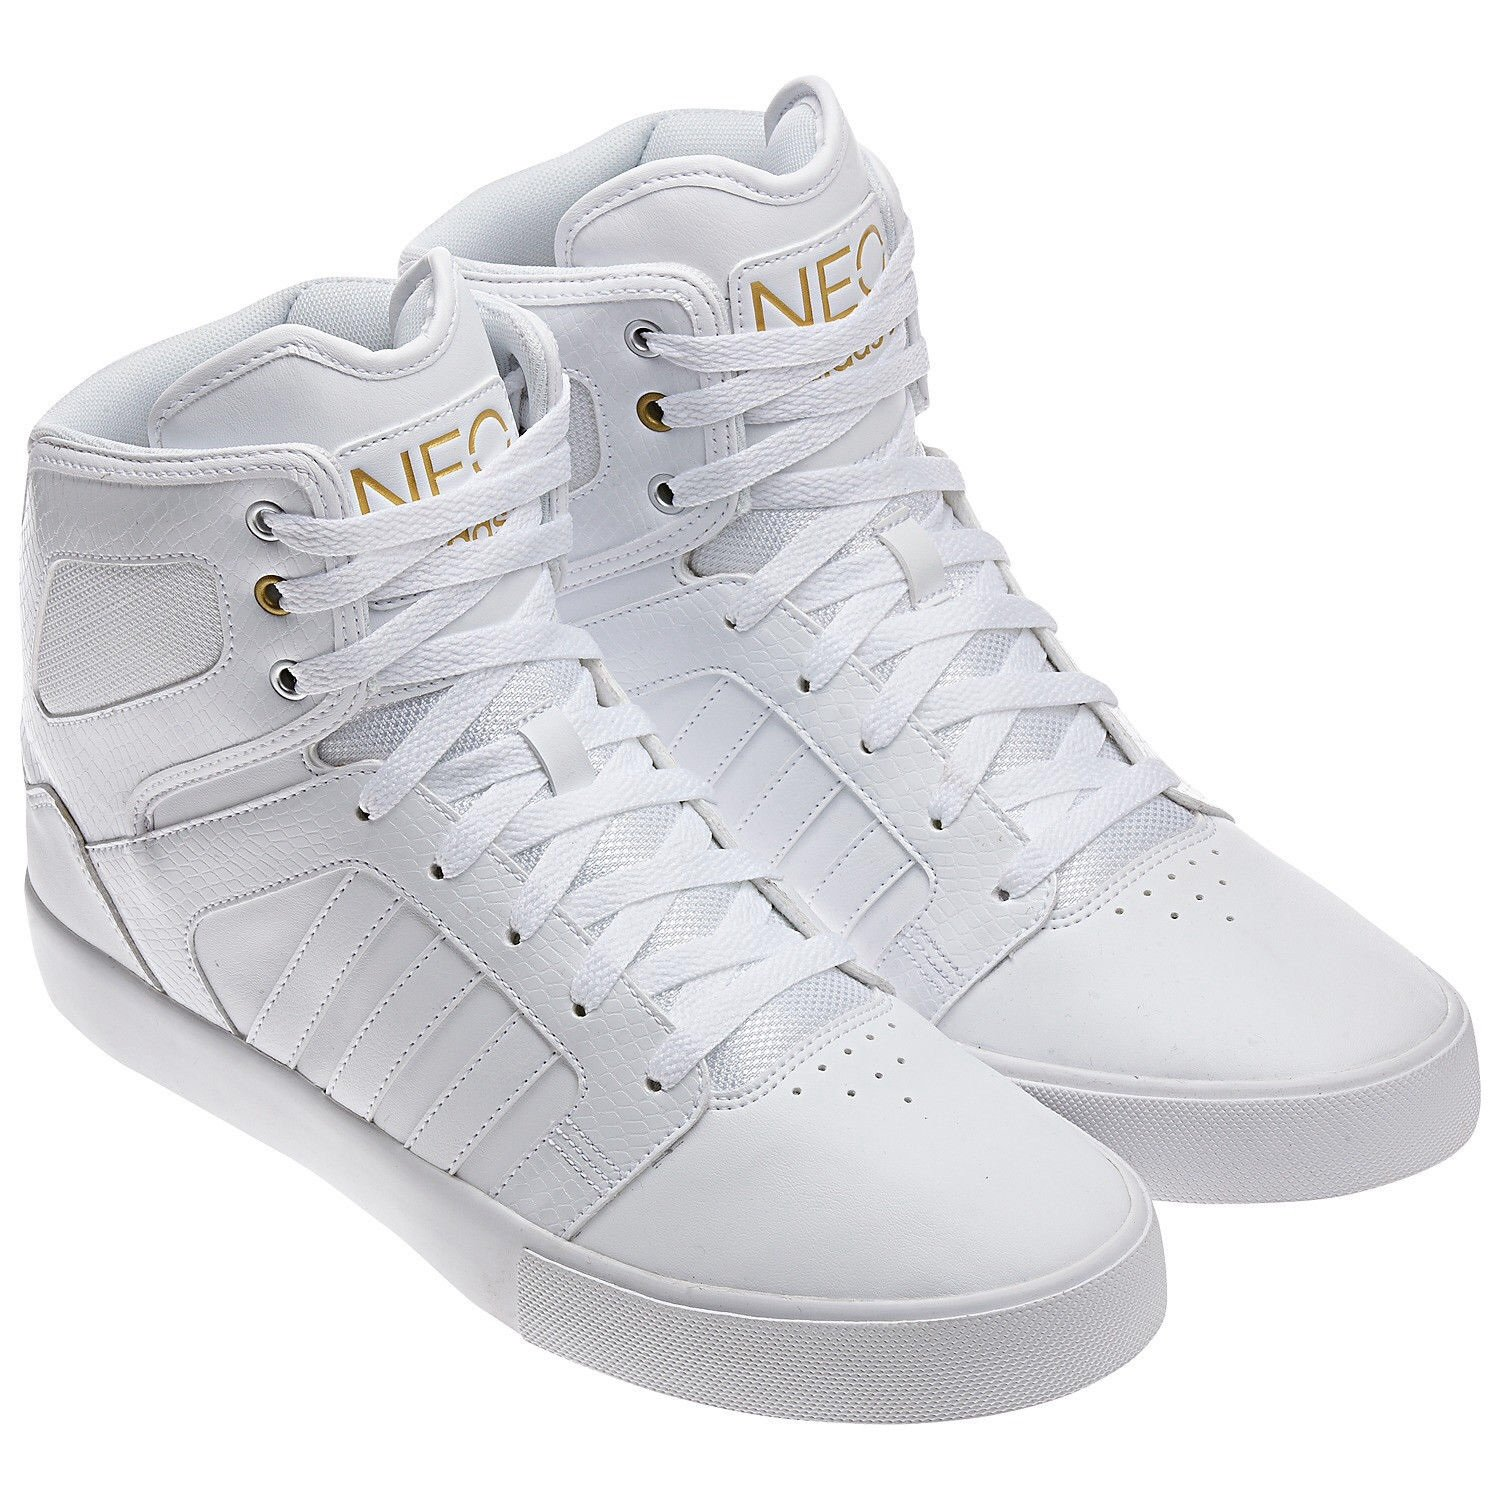 wholesale dealer b52bd 58c3f ... gold leather whiteout mens shoes adidas neo high tops grey ...